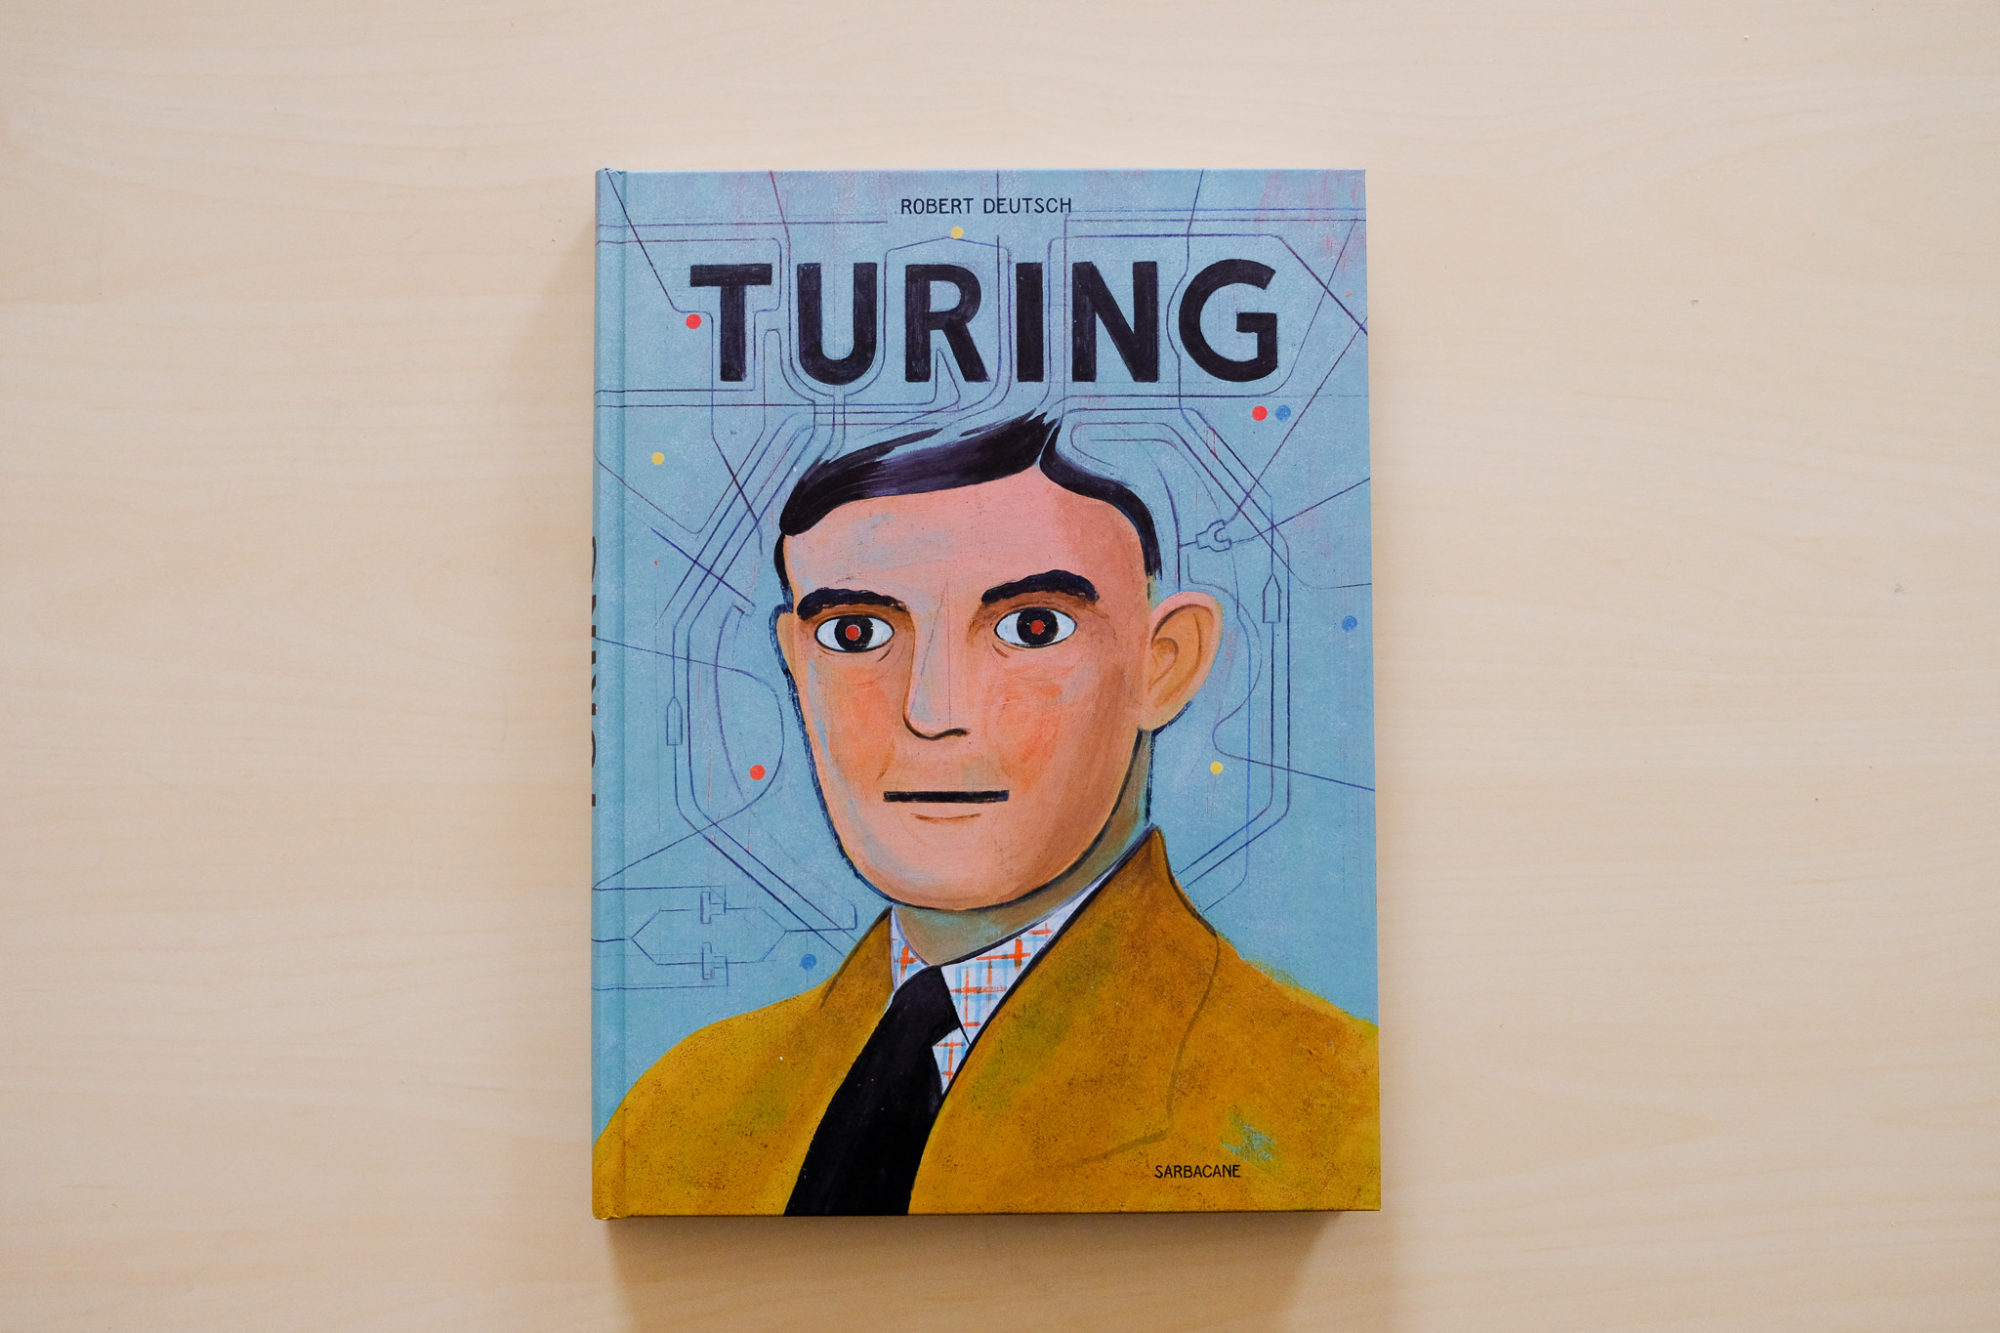 Turing, une bande dessinée touchante par Robert Deutsch